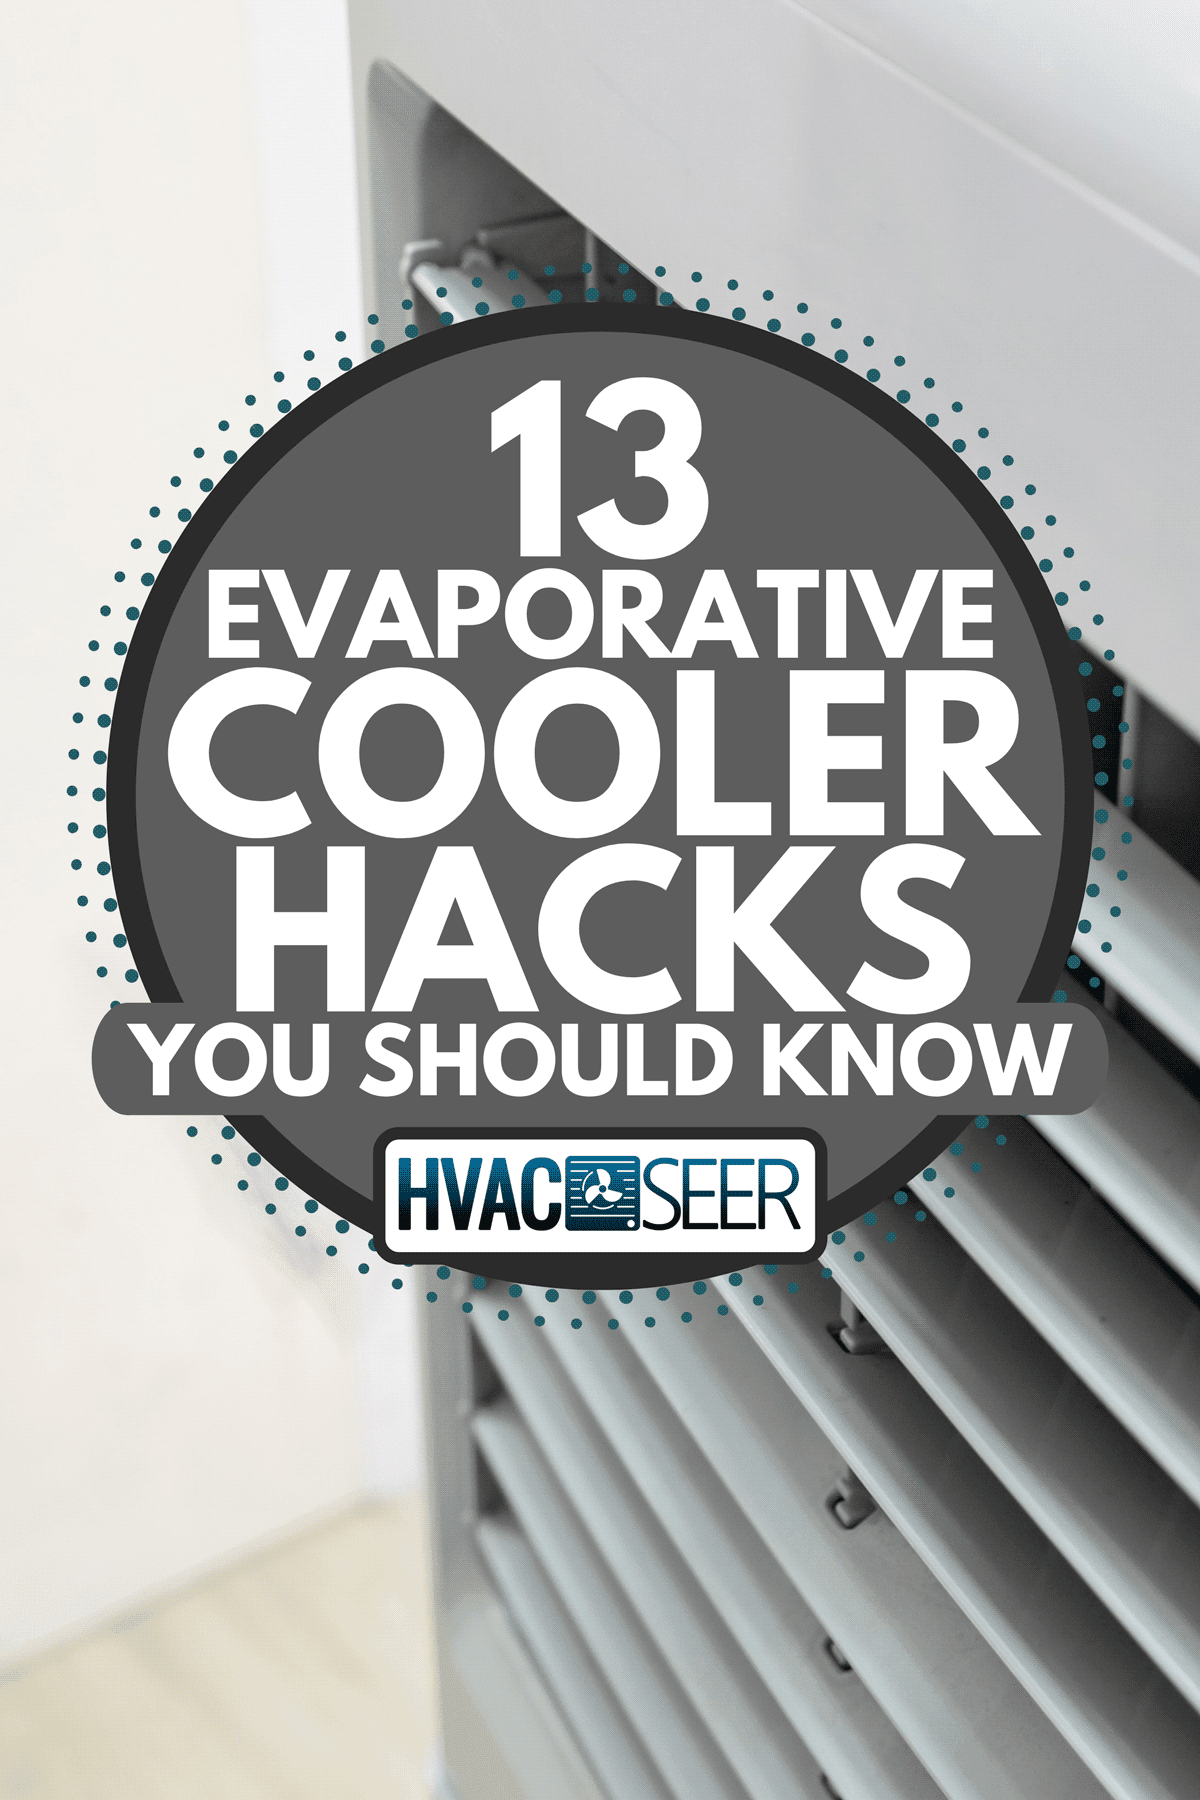 An evaporative air cooler front running blown, 13 Evaporative Cooler Hacks You Should Know